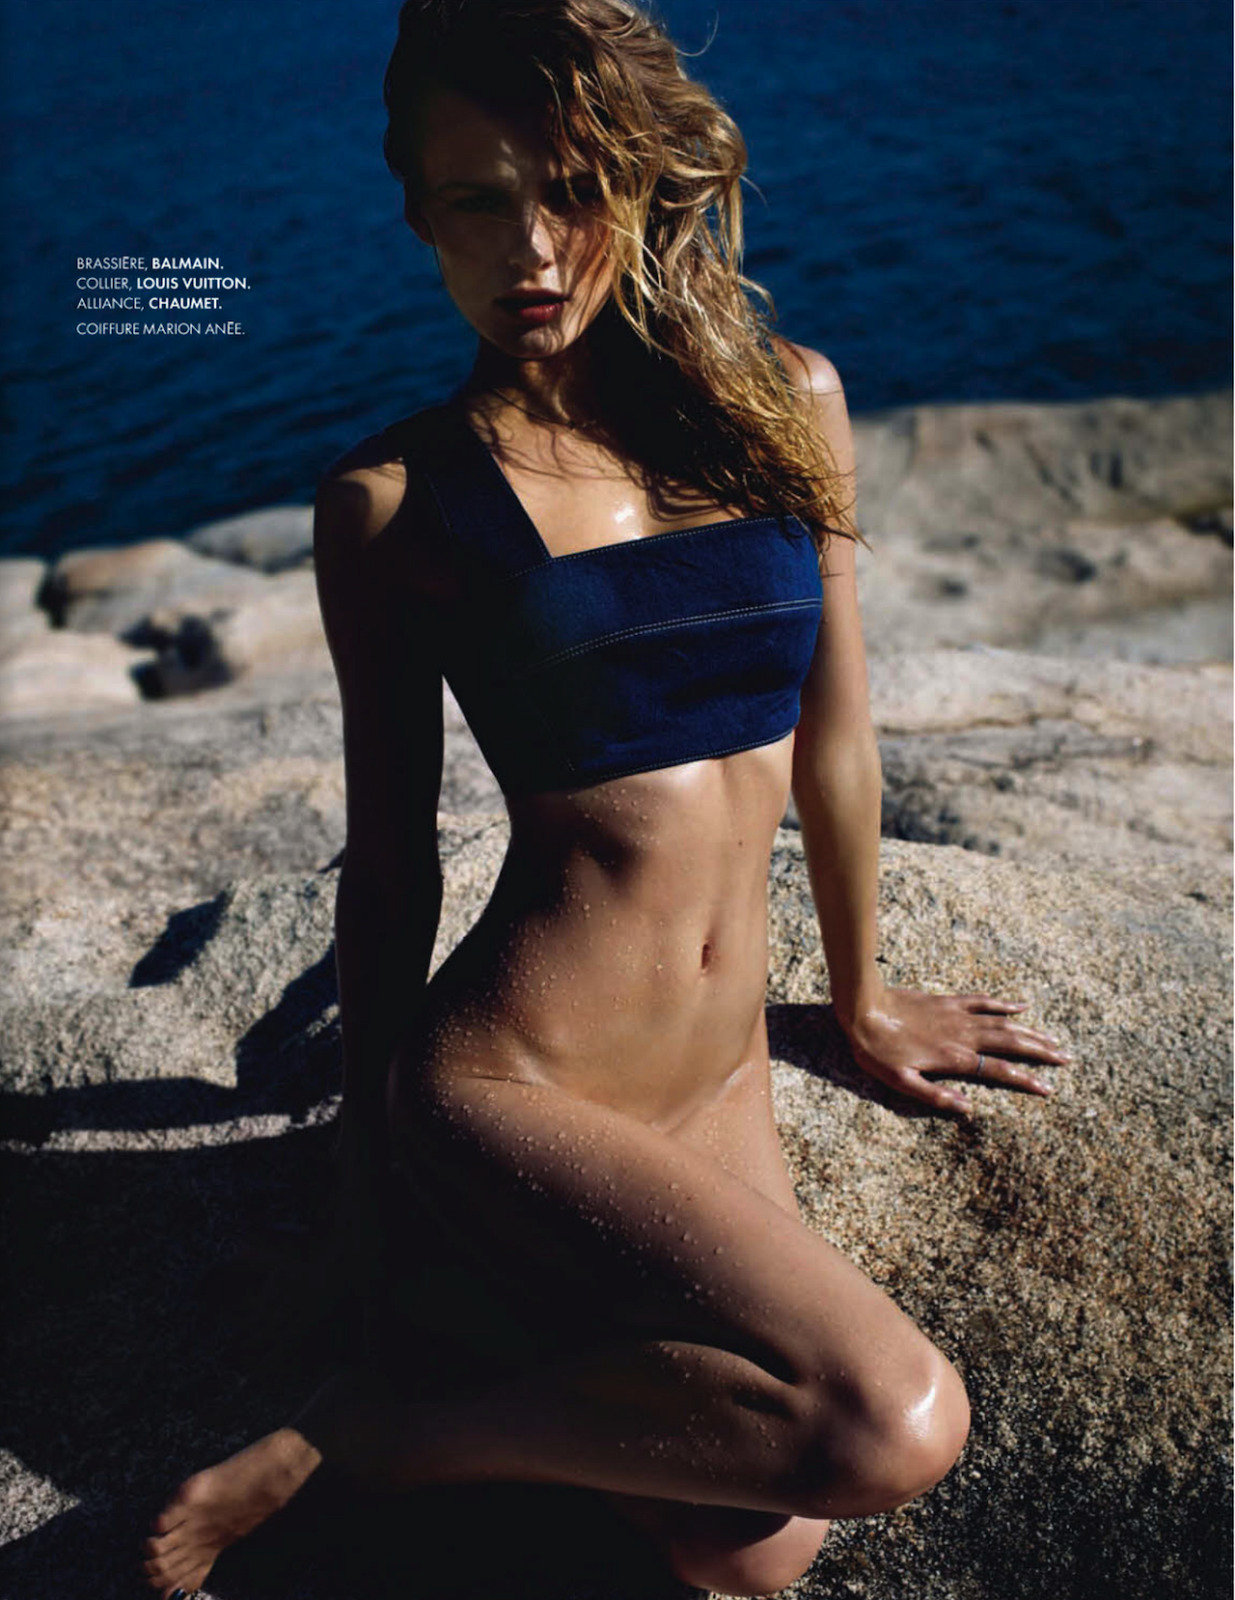 iowntherunway:   Wave of Chic Edita Vilkeviciute by Jan Welters for ELLE France #3513 See more from this set here